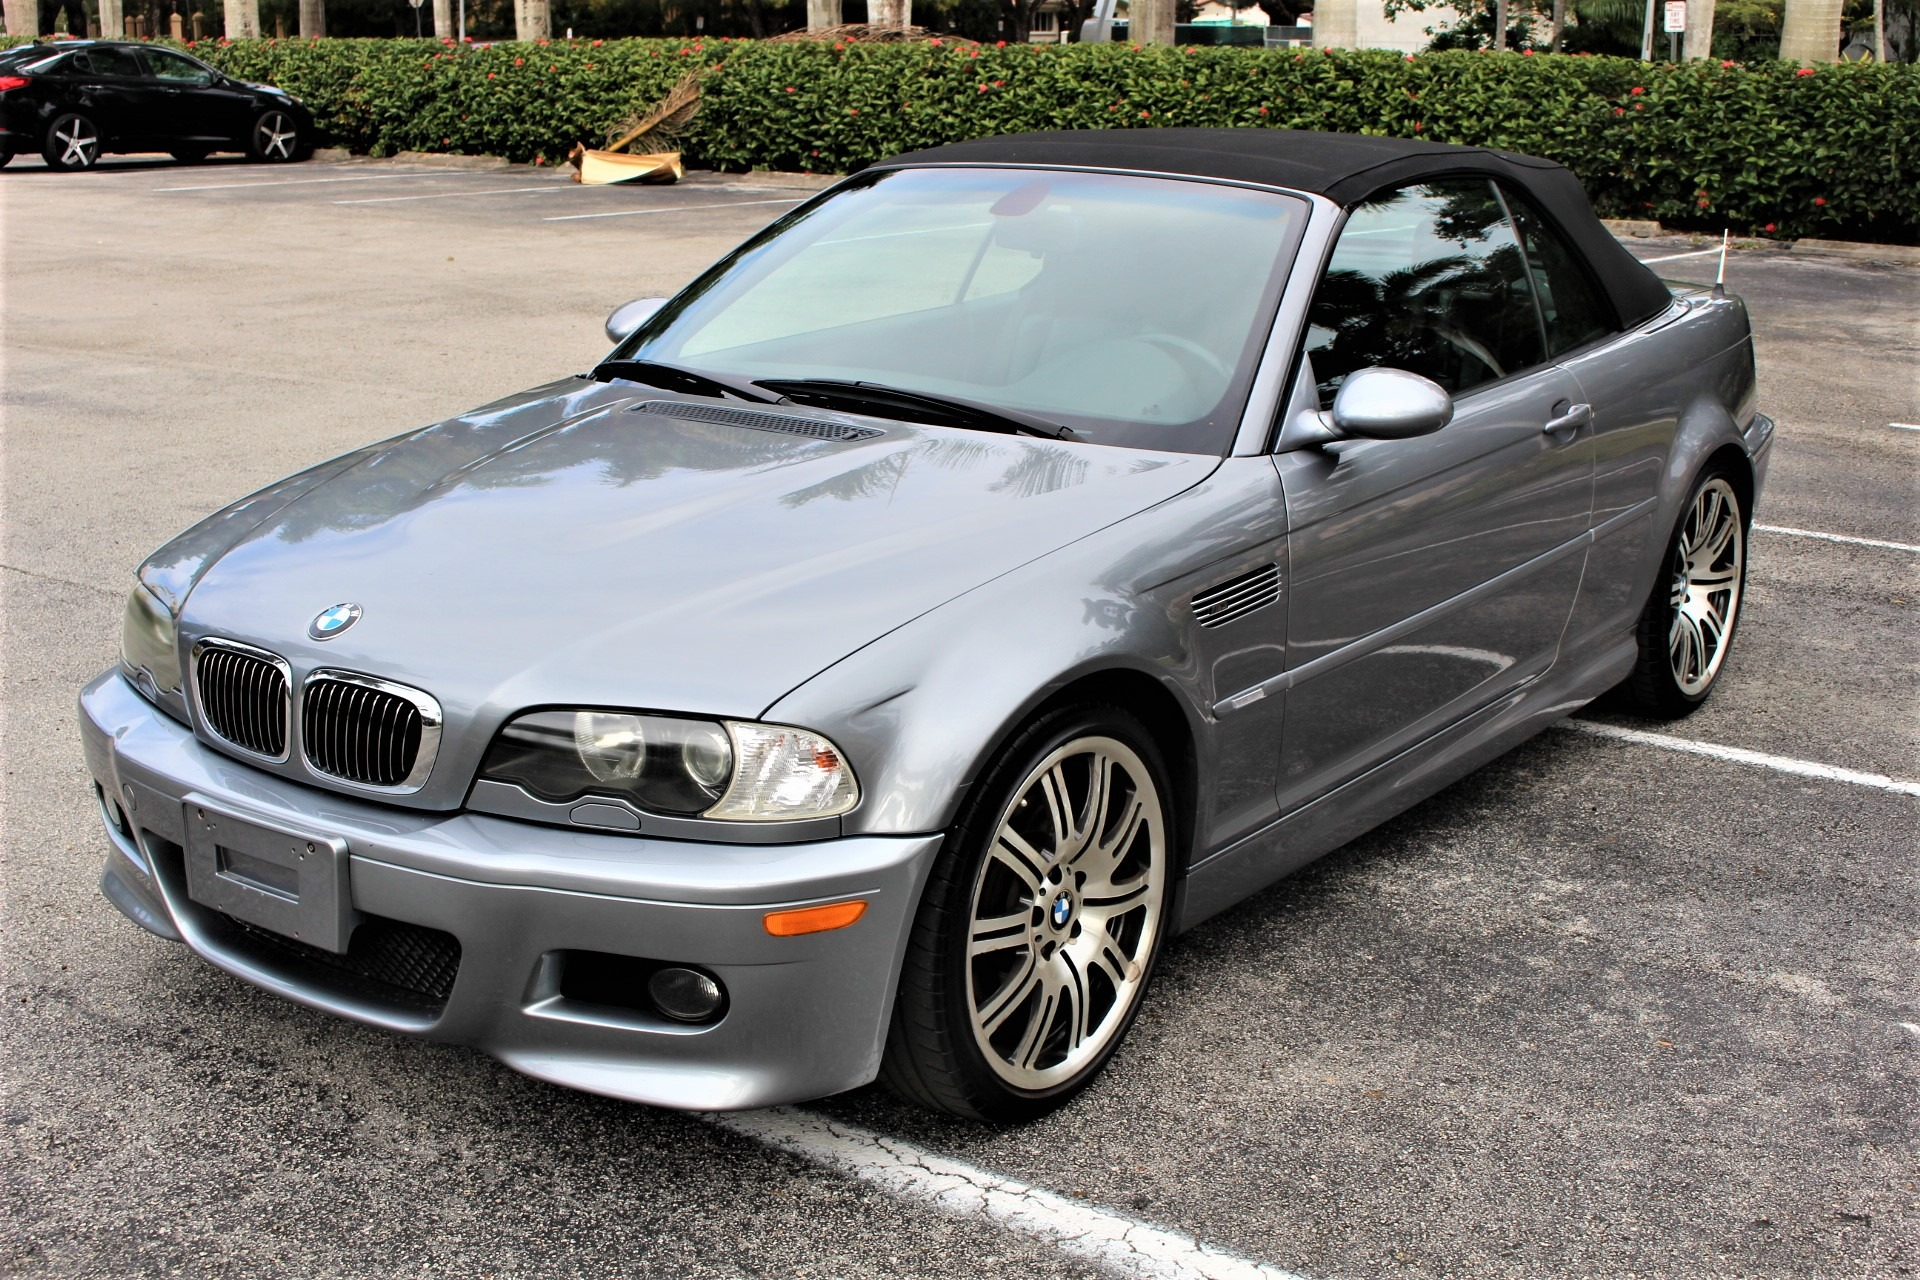 Used 2004 BMW M3 for sale Sold at The Gables Sports Cars in Miami FL 33146 4